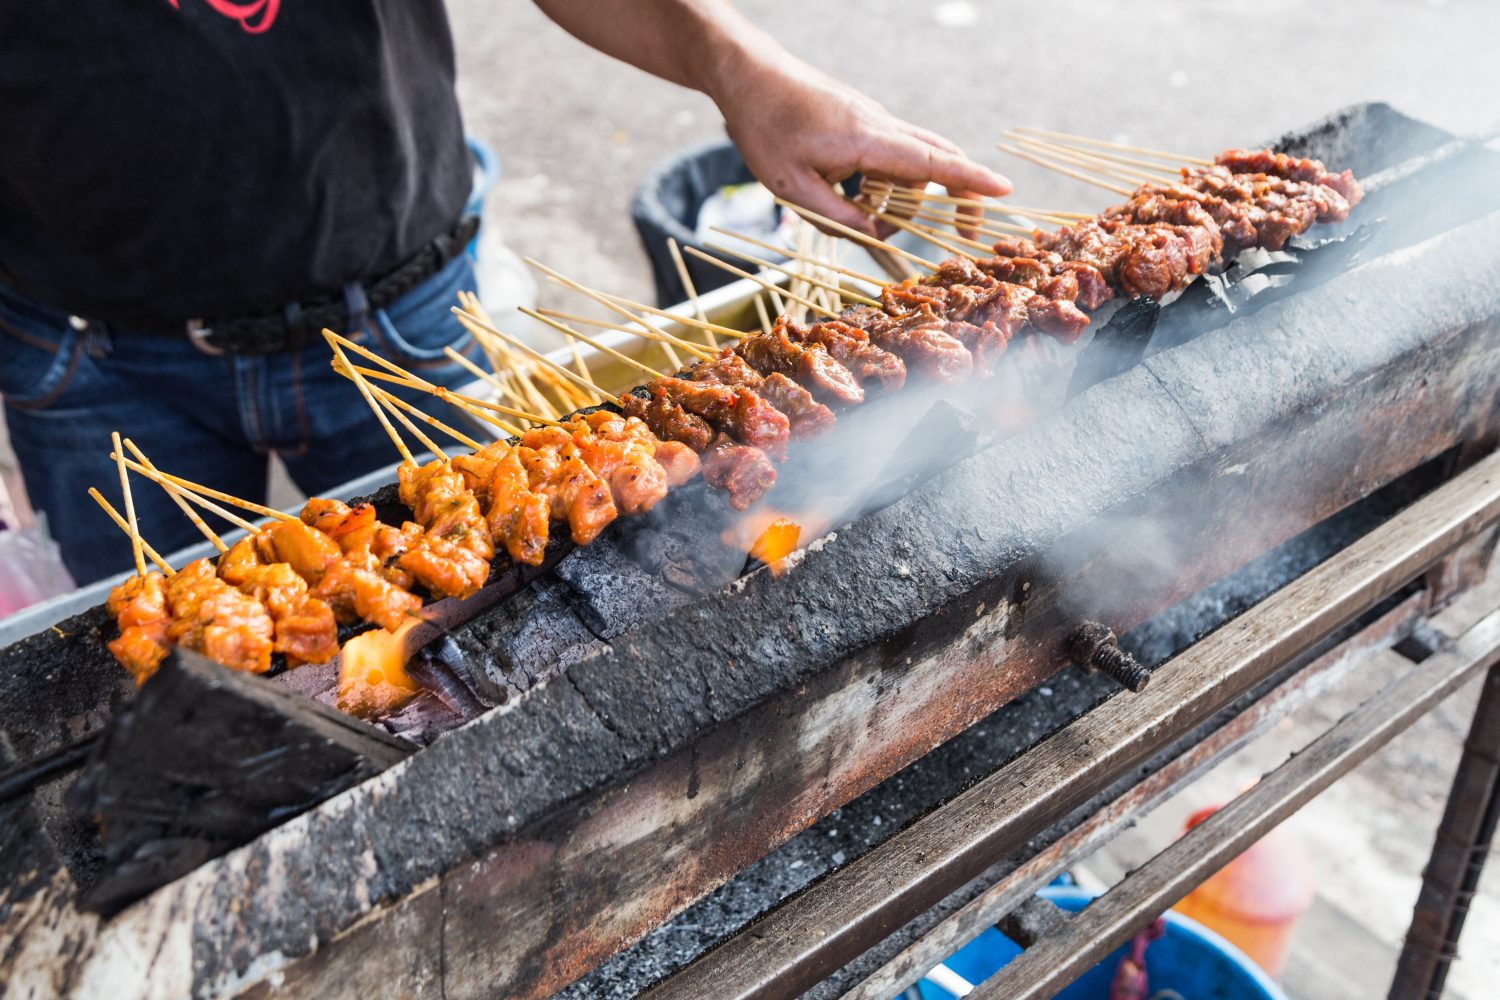 A common sight in hawker centres; vendors fanning the chargrilled bbq satay meat before serving them to customers.